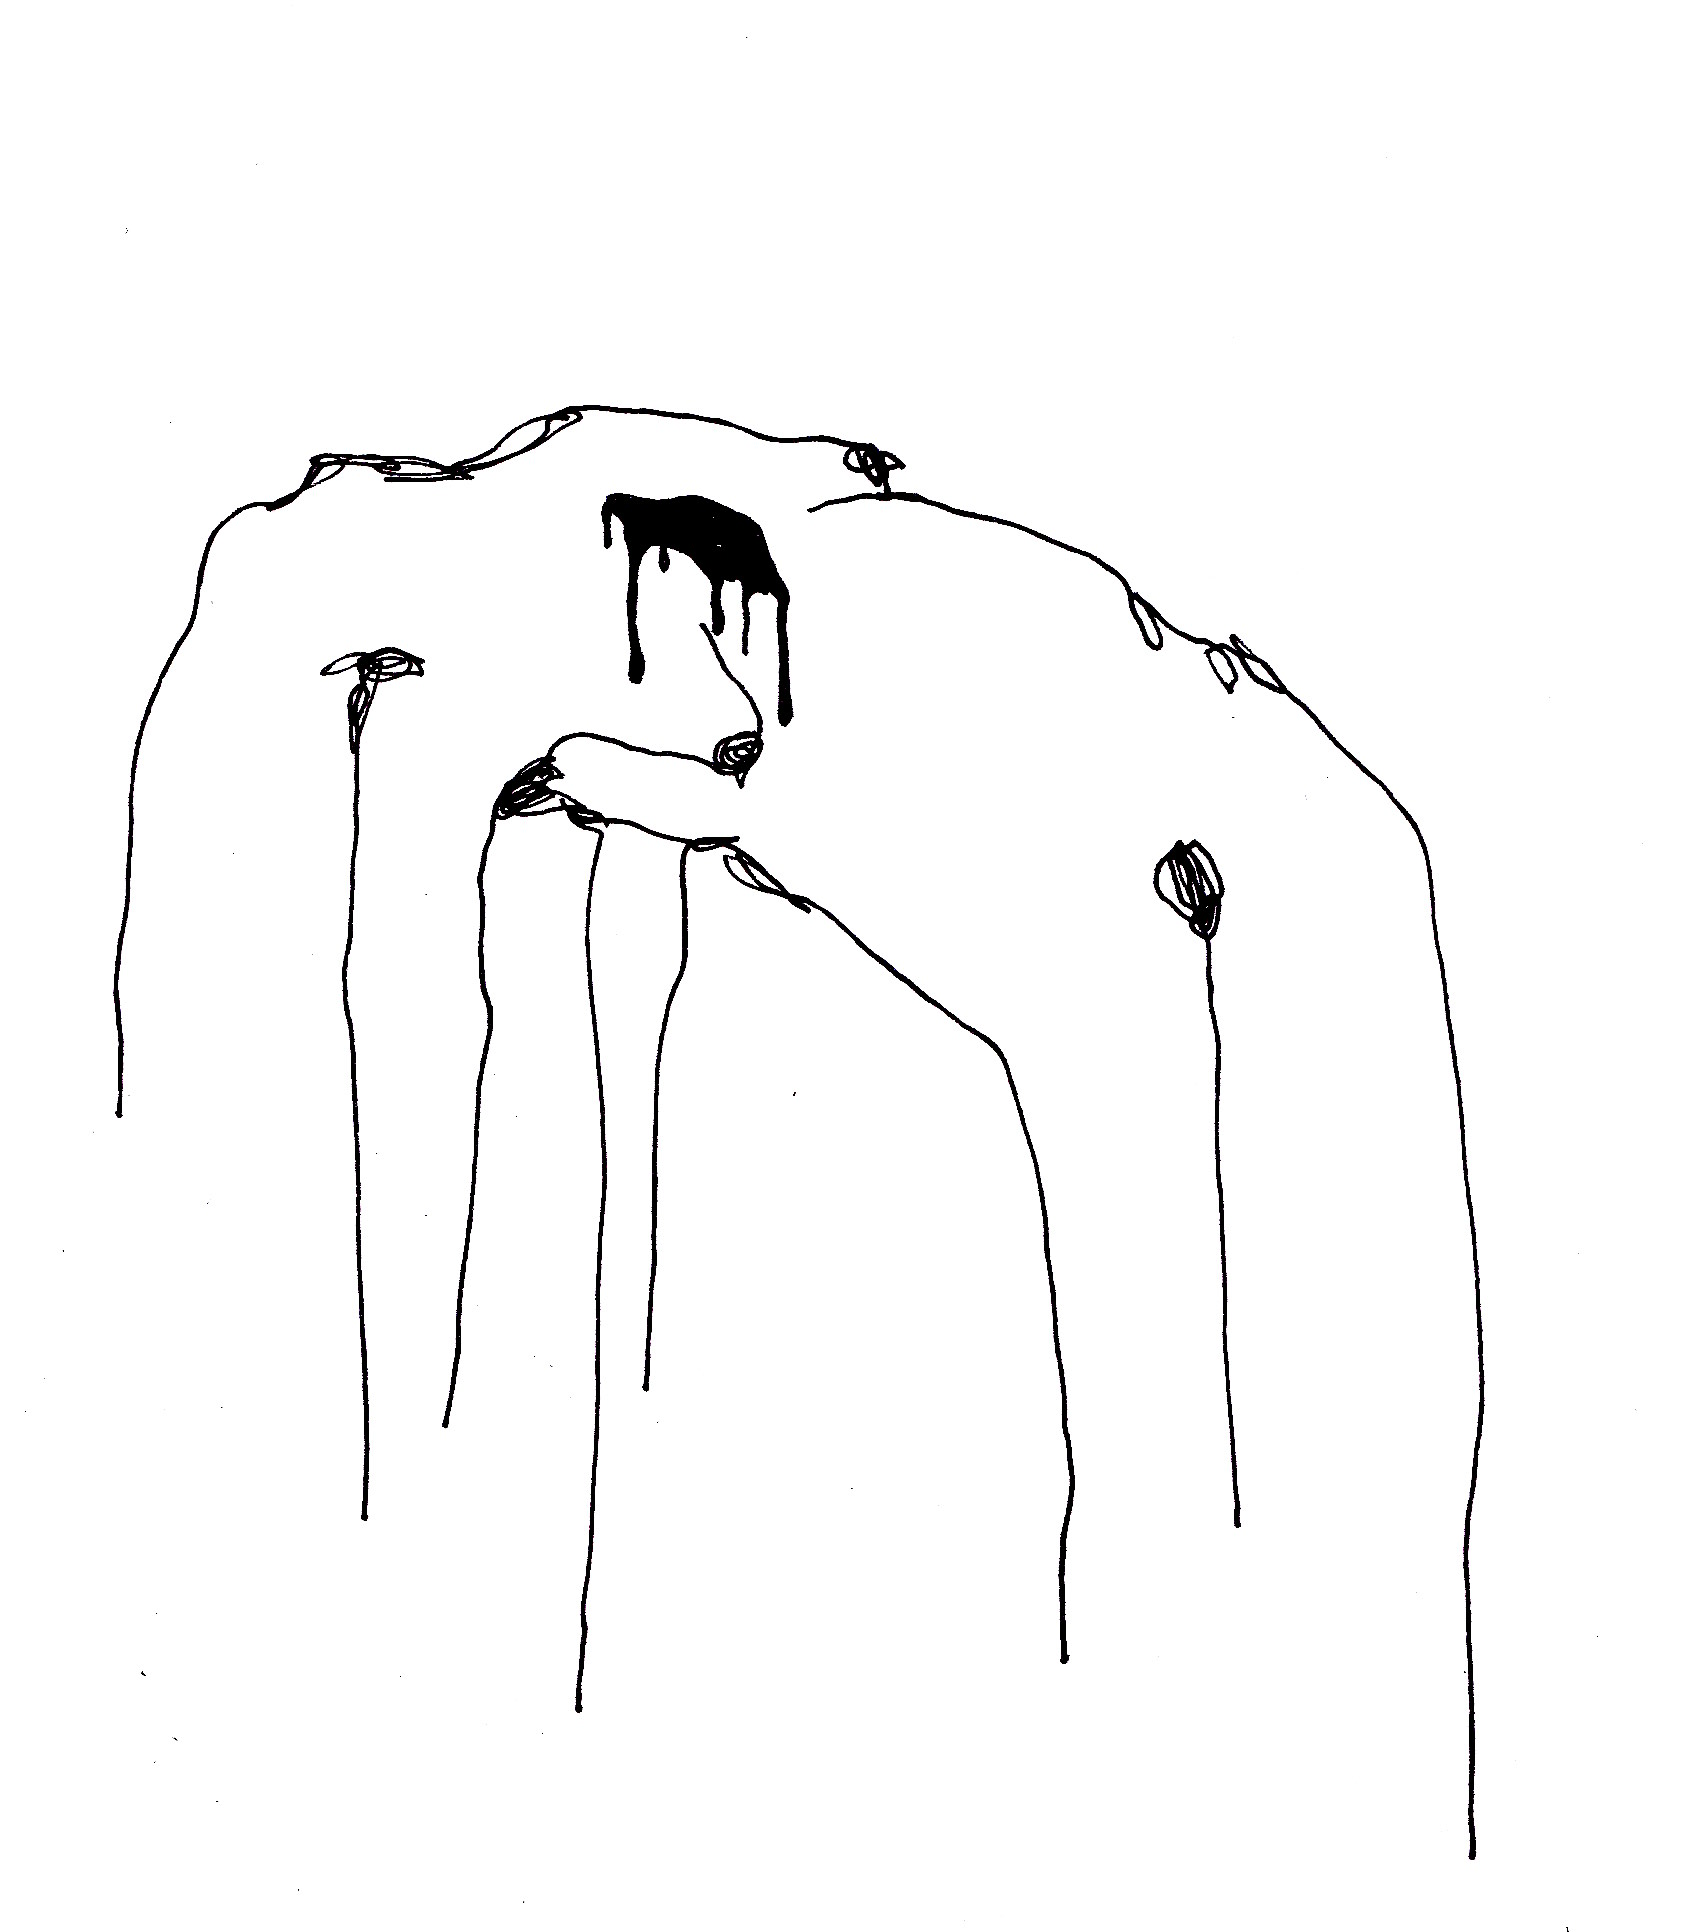 Every time I think of you